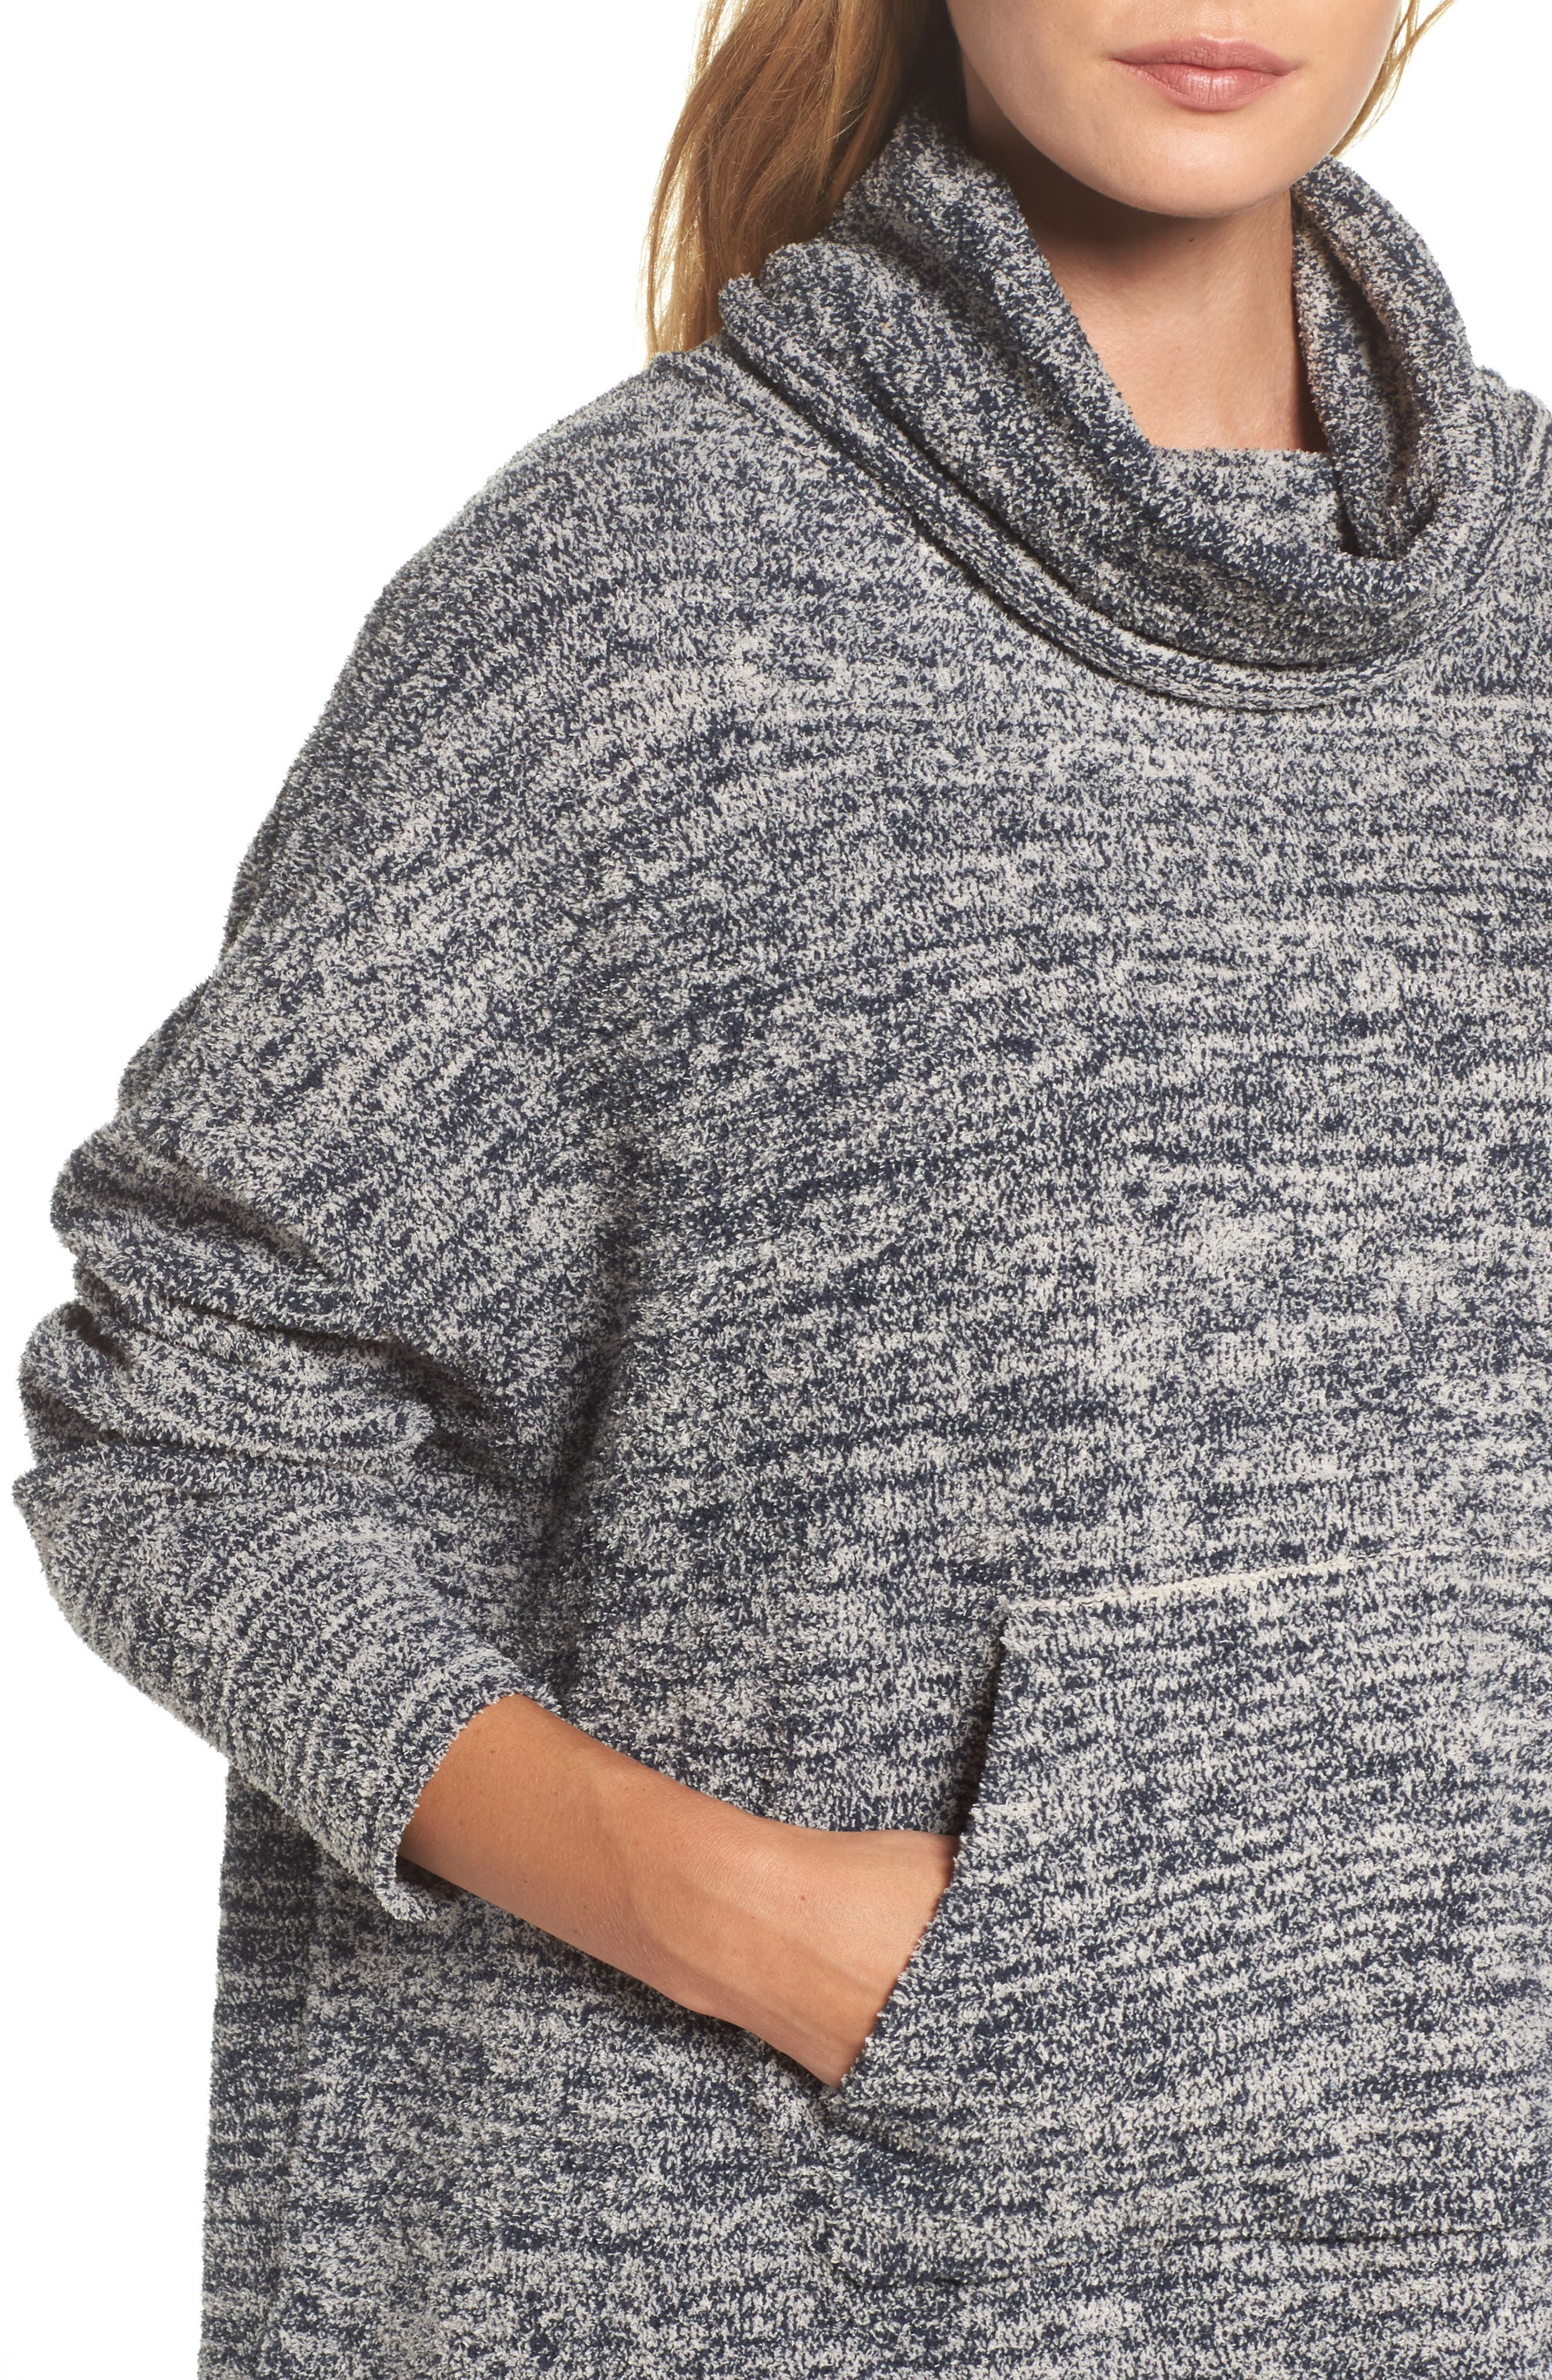 Cozychic<sup>®</sup> Lounge Pullover,                             Alternate thumbnail 5, color,                             Indigo/ Stone Heathered